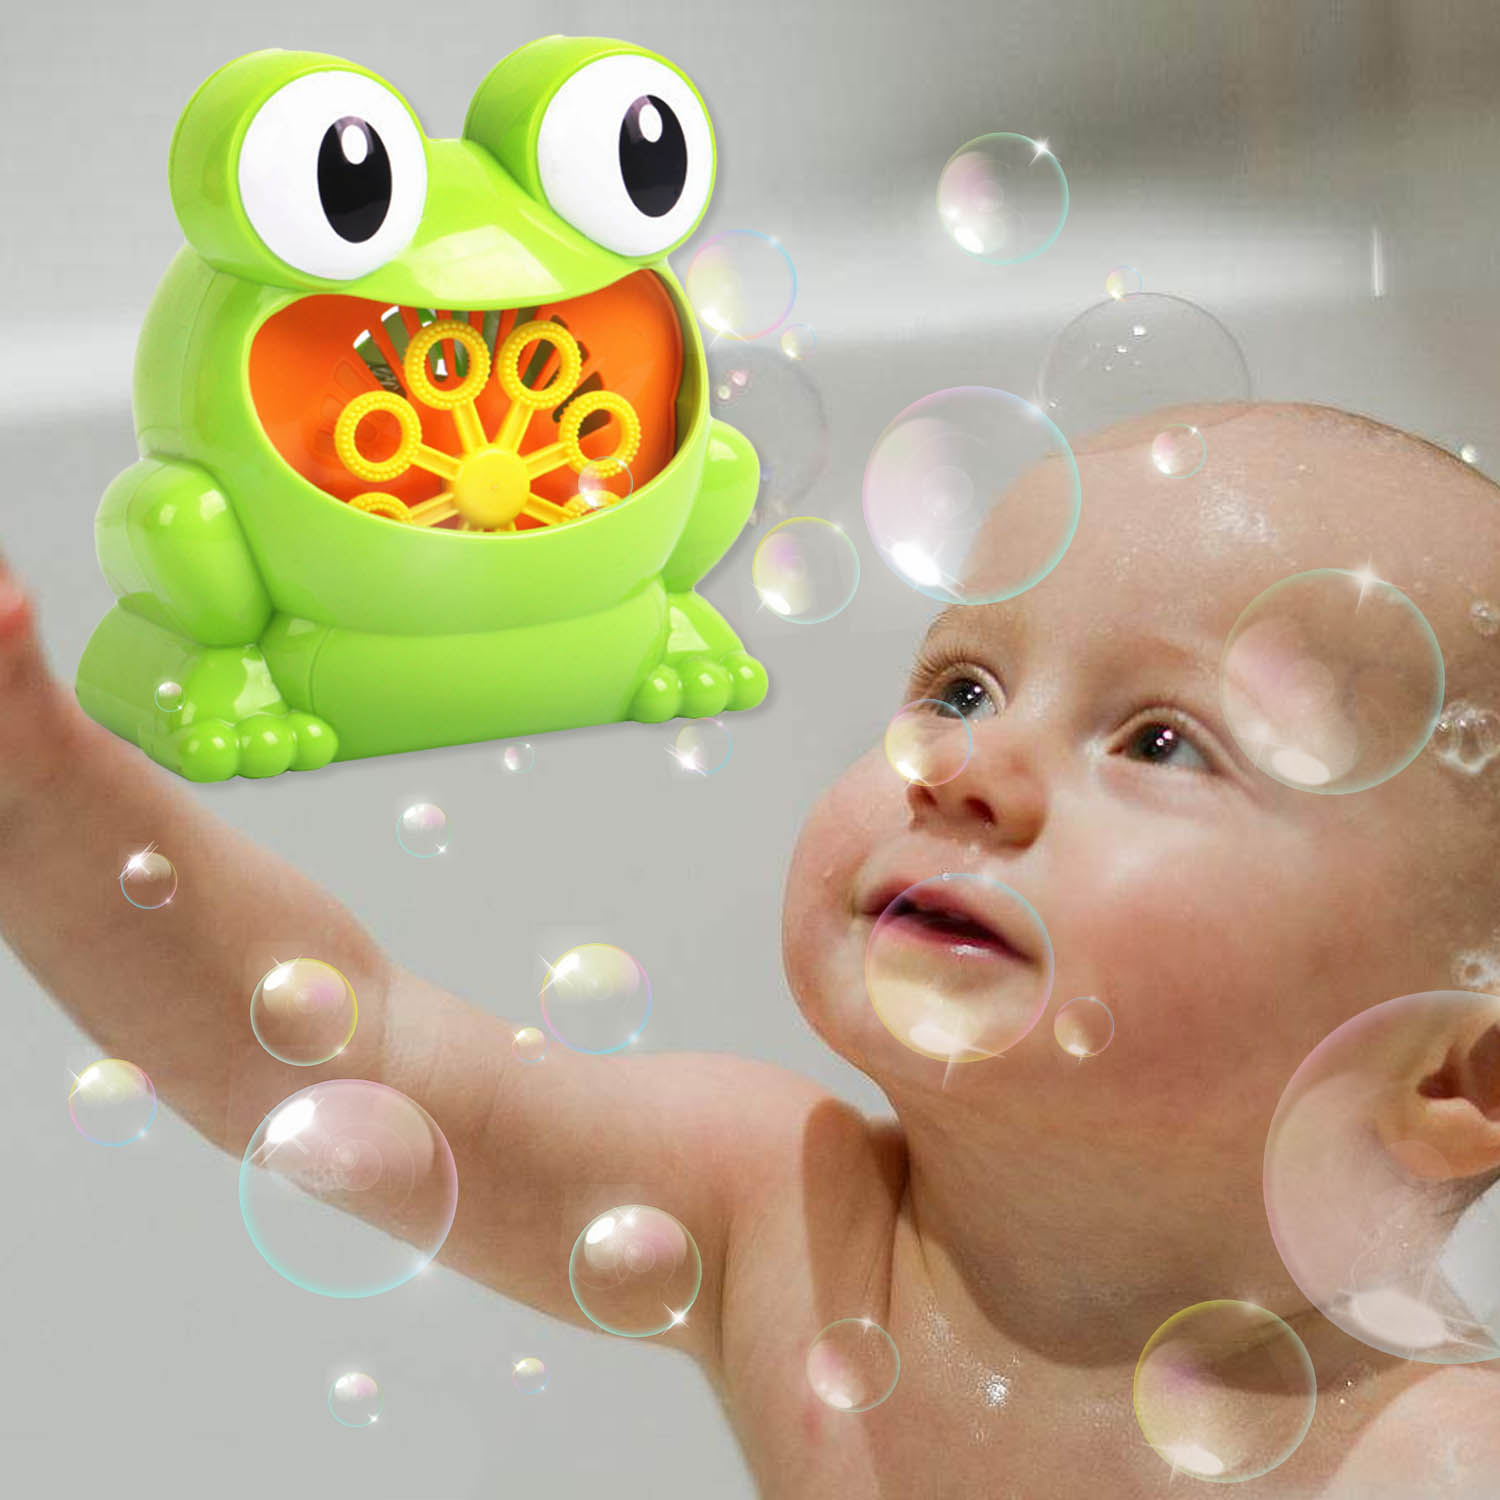 Kids Funny Cartoon Battery Powered Automatic Frog Bubble Machine Electric Soap Bubble Maker Machine Blower Bath Outdoor Toy